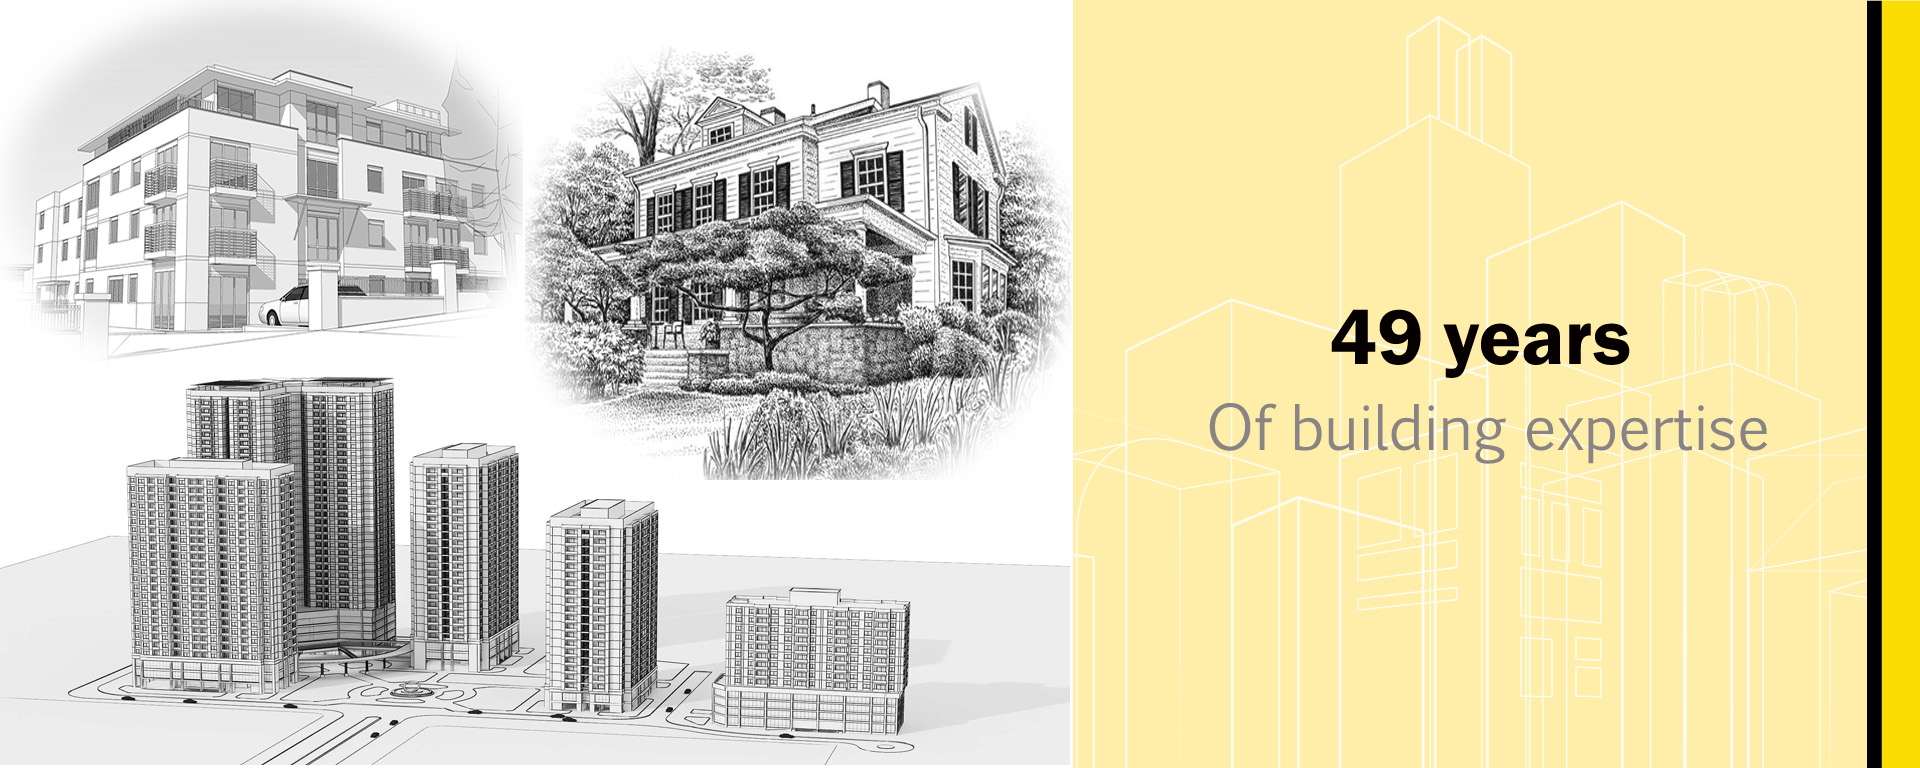 Web-Banner-Image-3-with-the-word-of-49-yrs-of-building-expertise